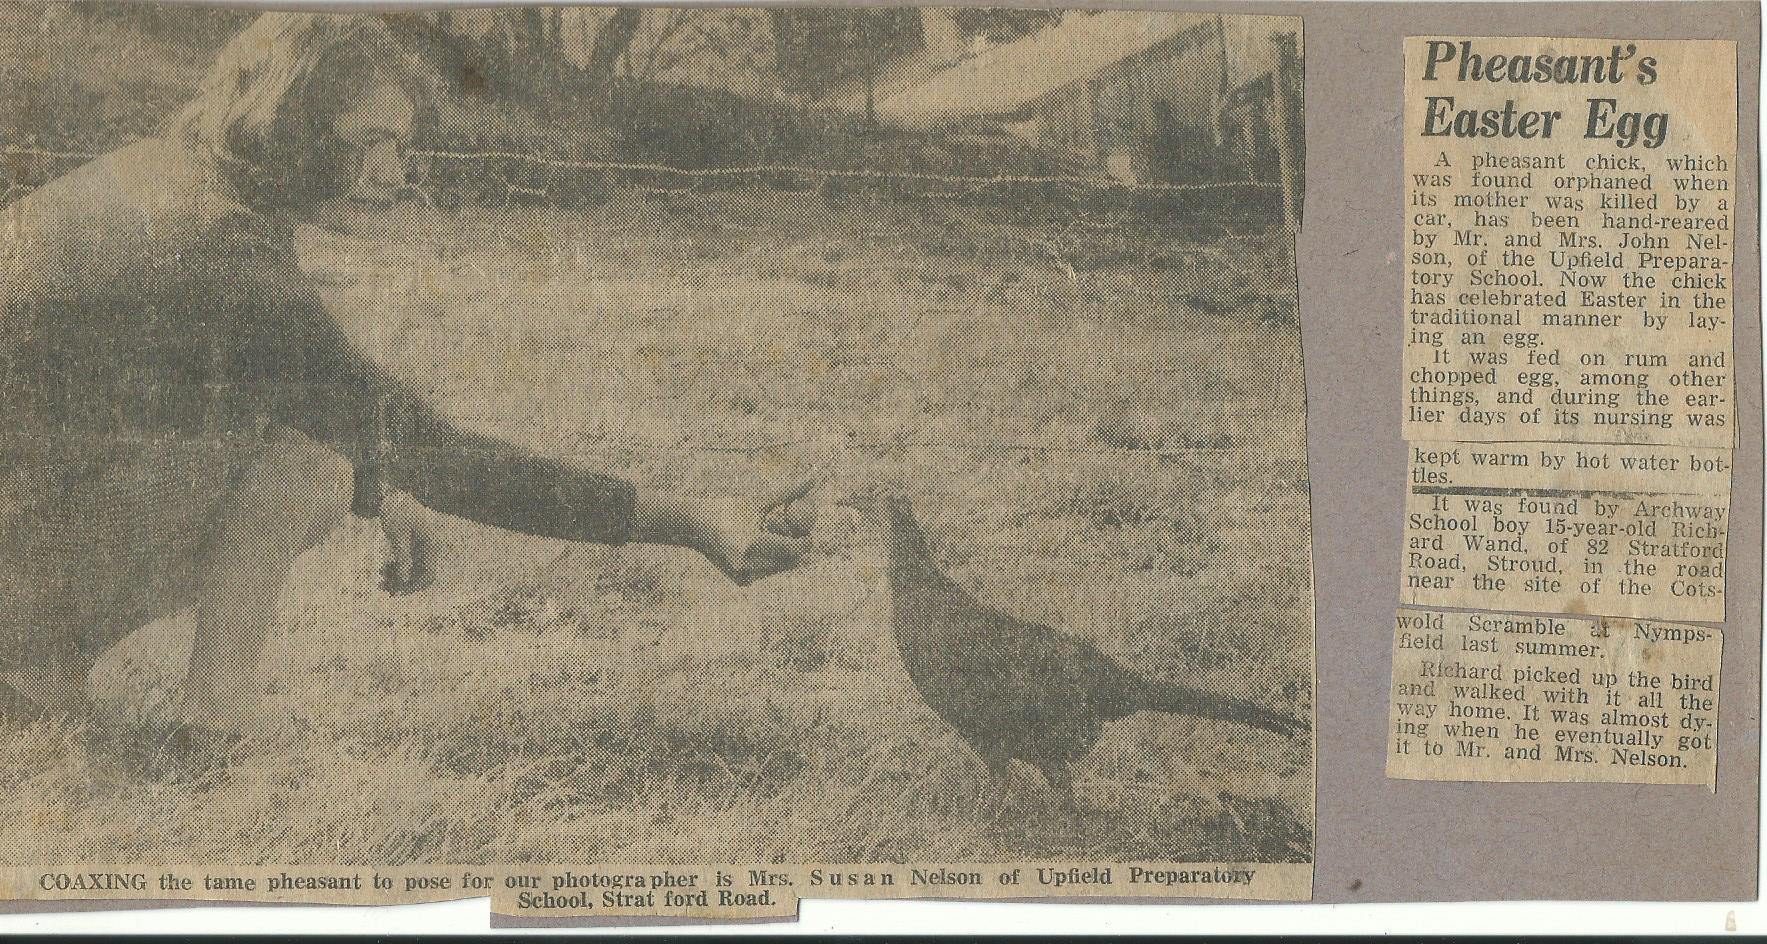 Sue and the Pheasant